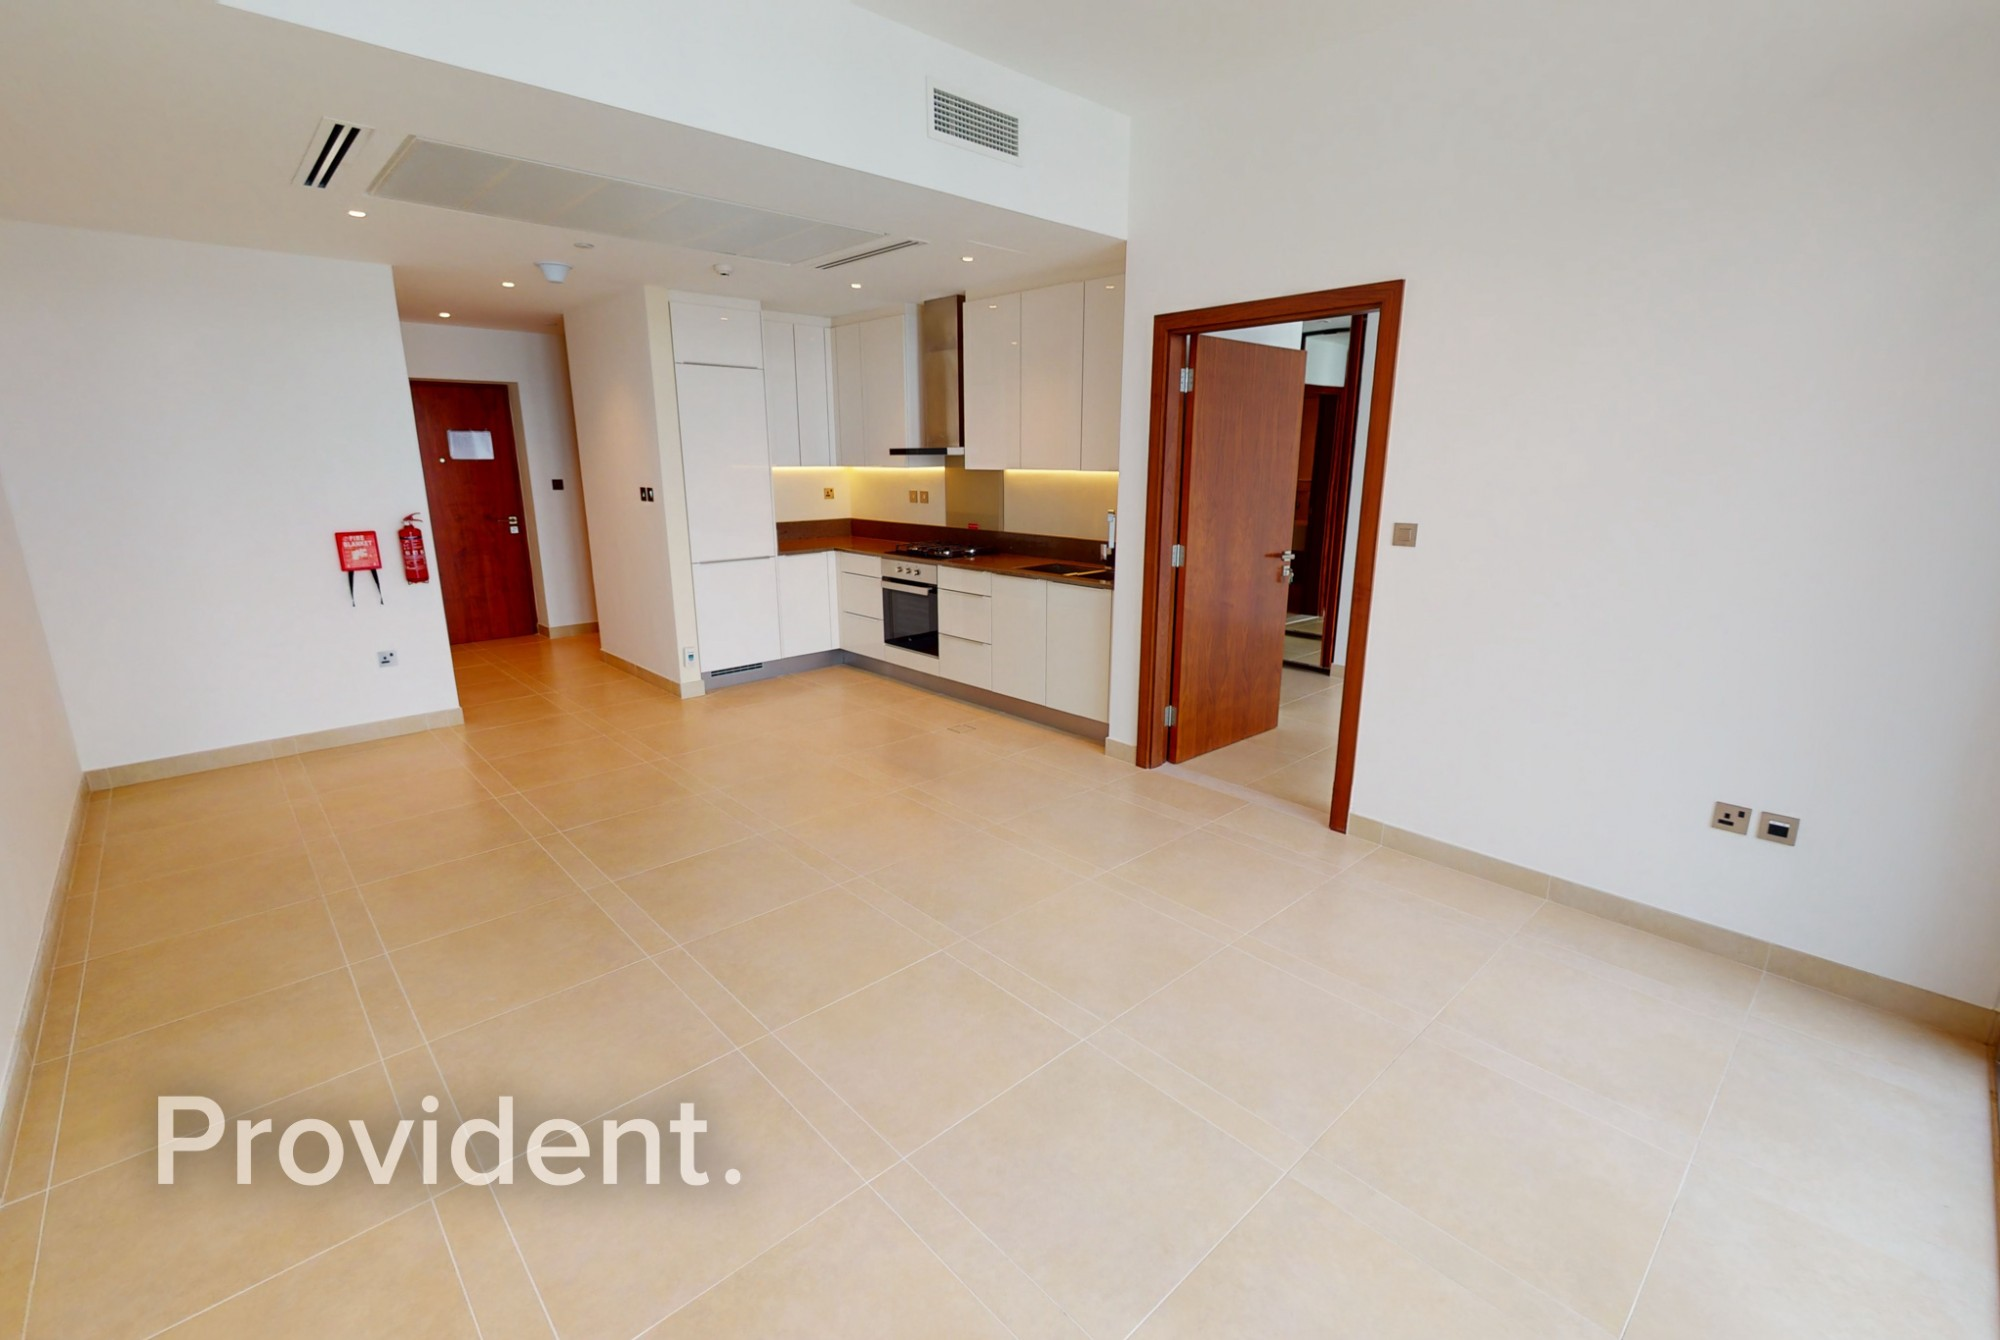 Urgent, Motivated Seller, Vacant, Spacious Layout